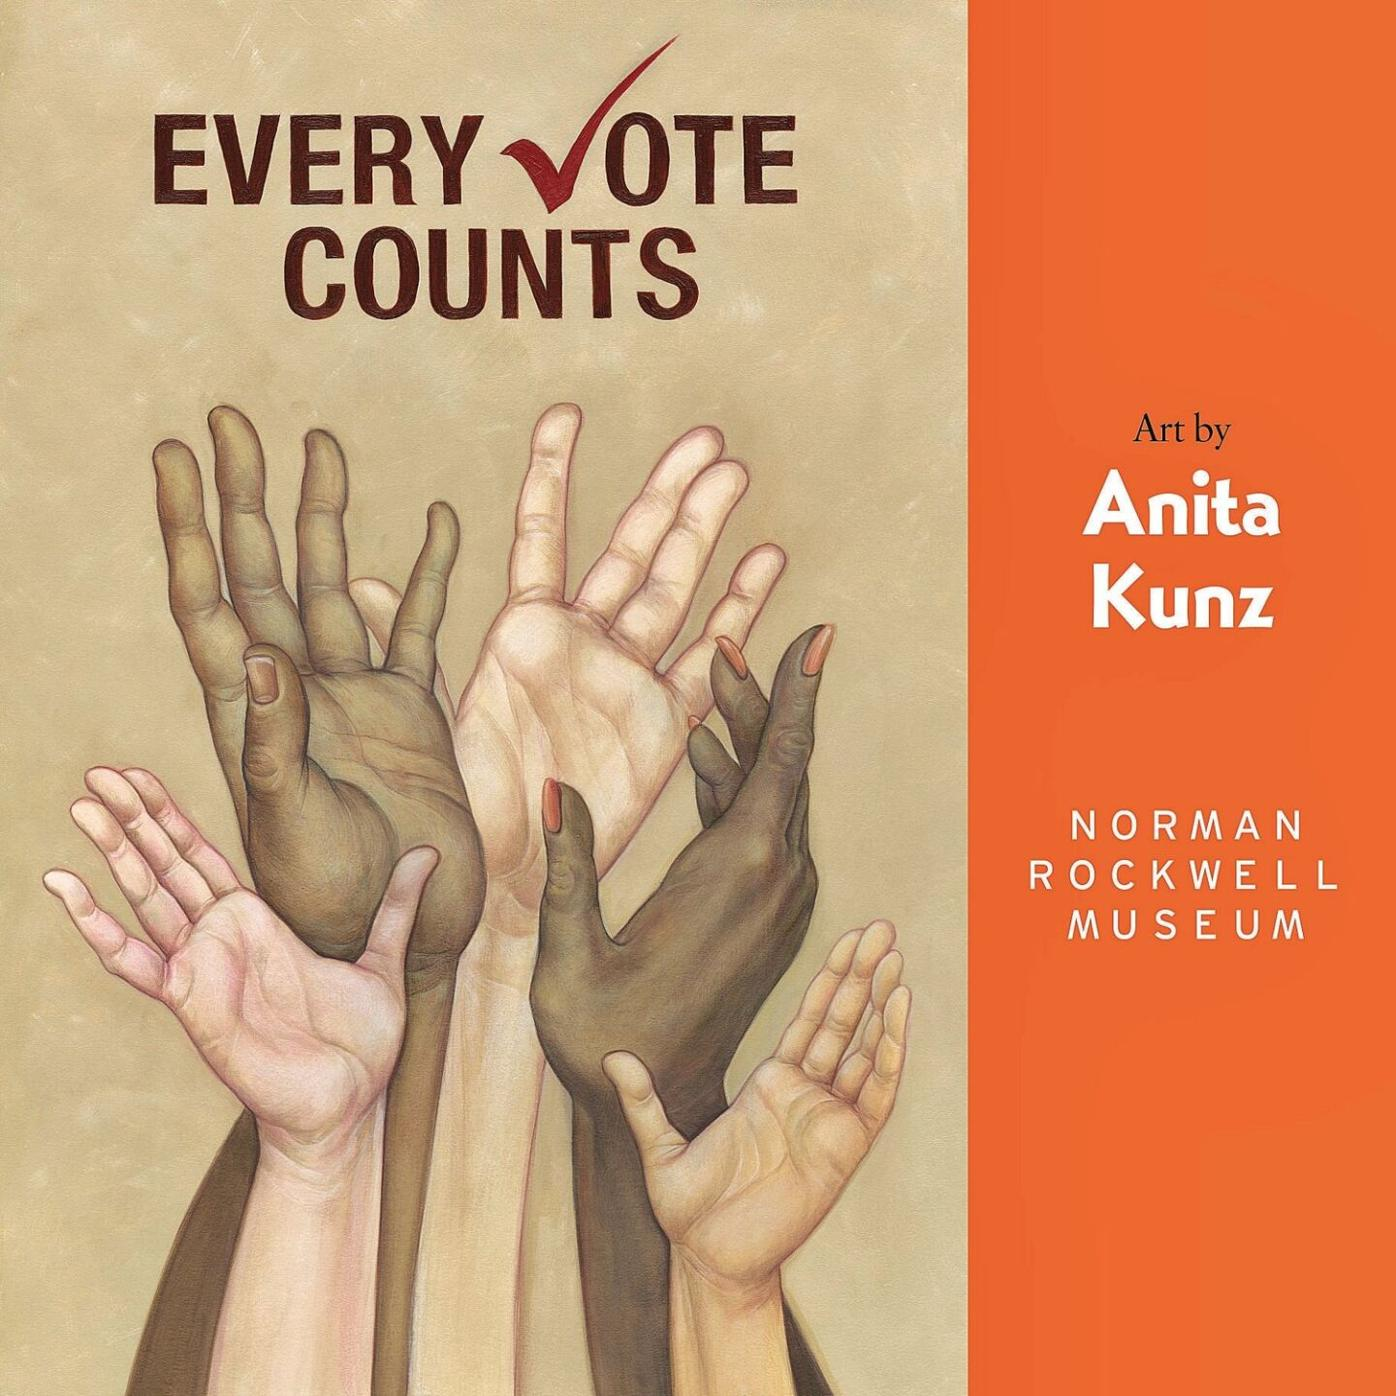 In a first, Norman Rockwell Museum enlists illustrators to inspire voters